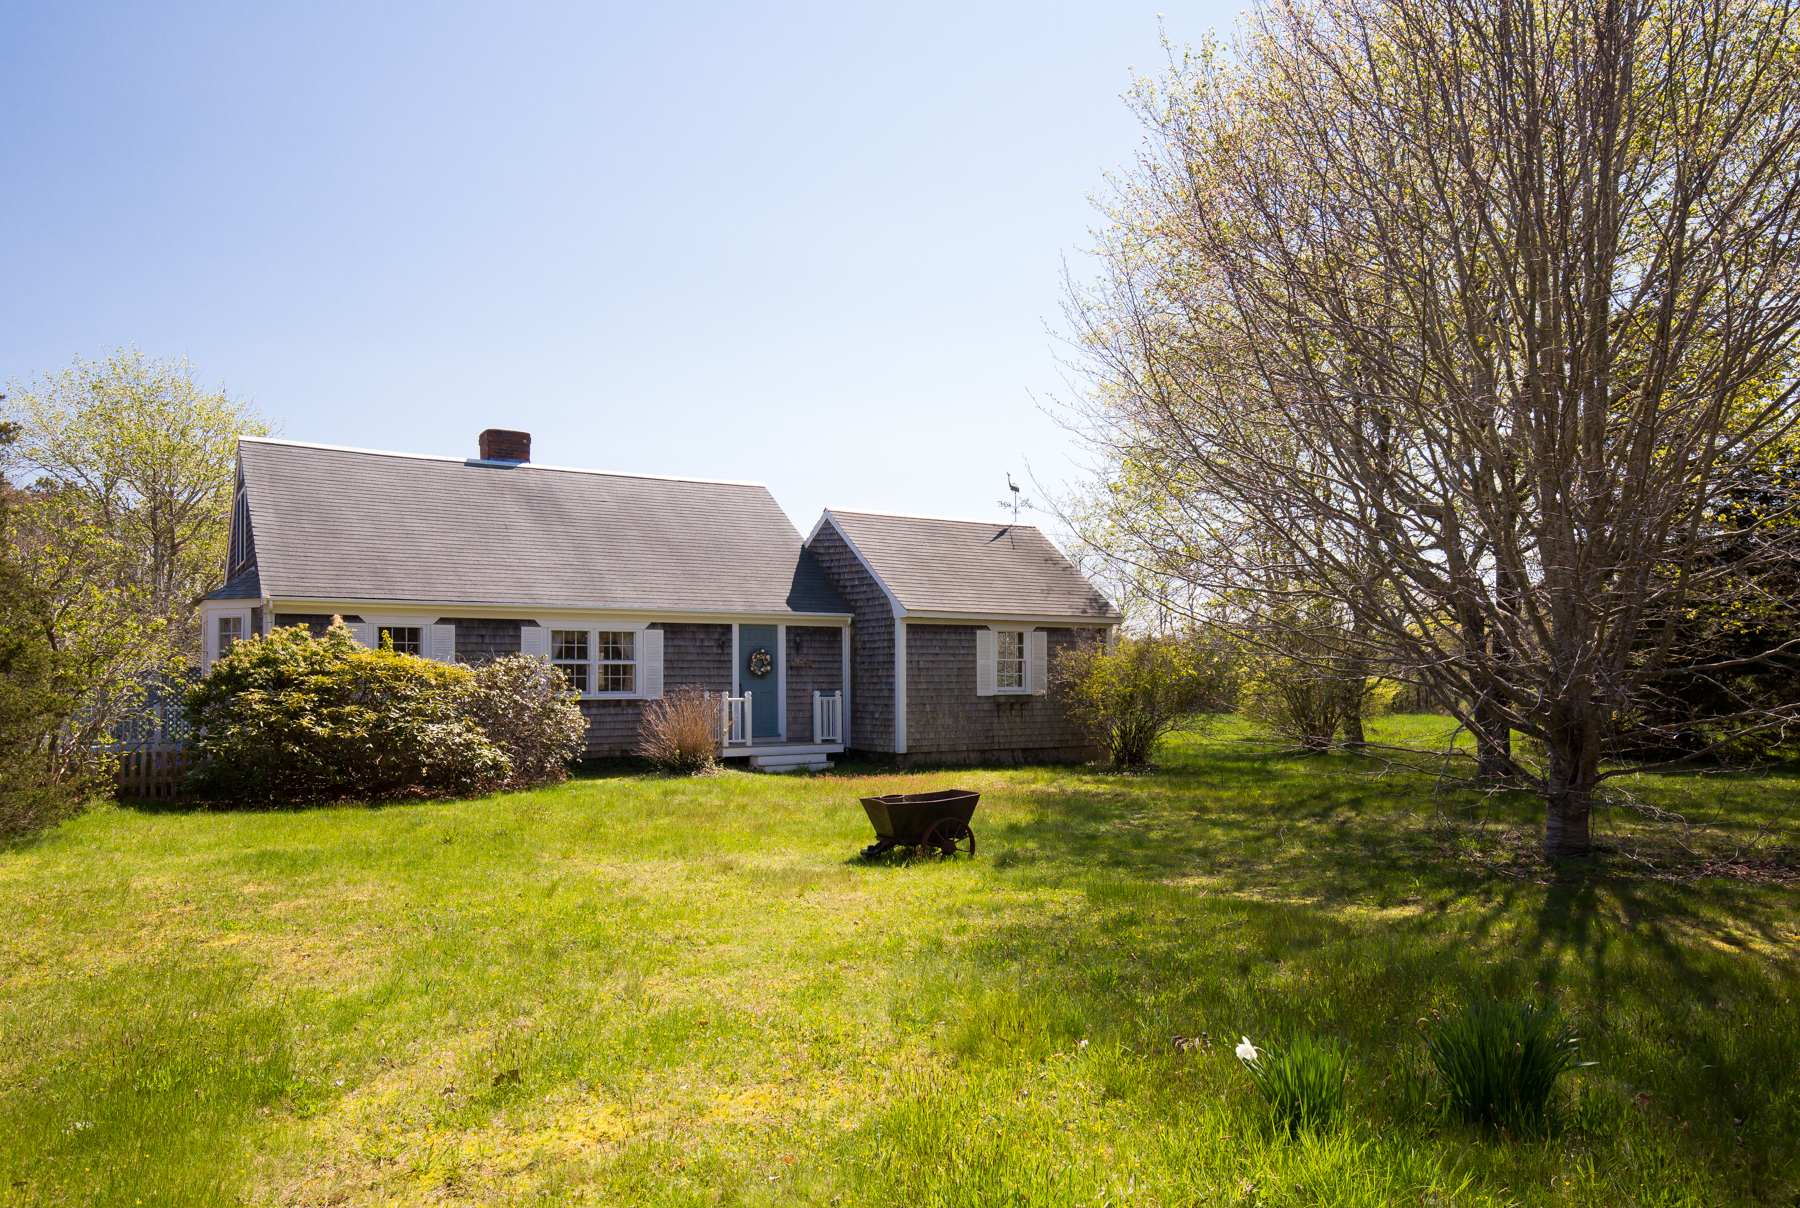 Single Family Home for Sale at Charming West Tisbury Setting 574 Edgartown Rd West Tisbury, Massachusetts, 02575 United States